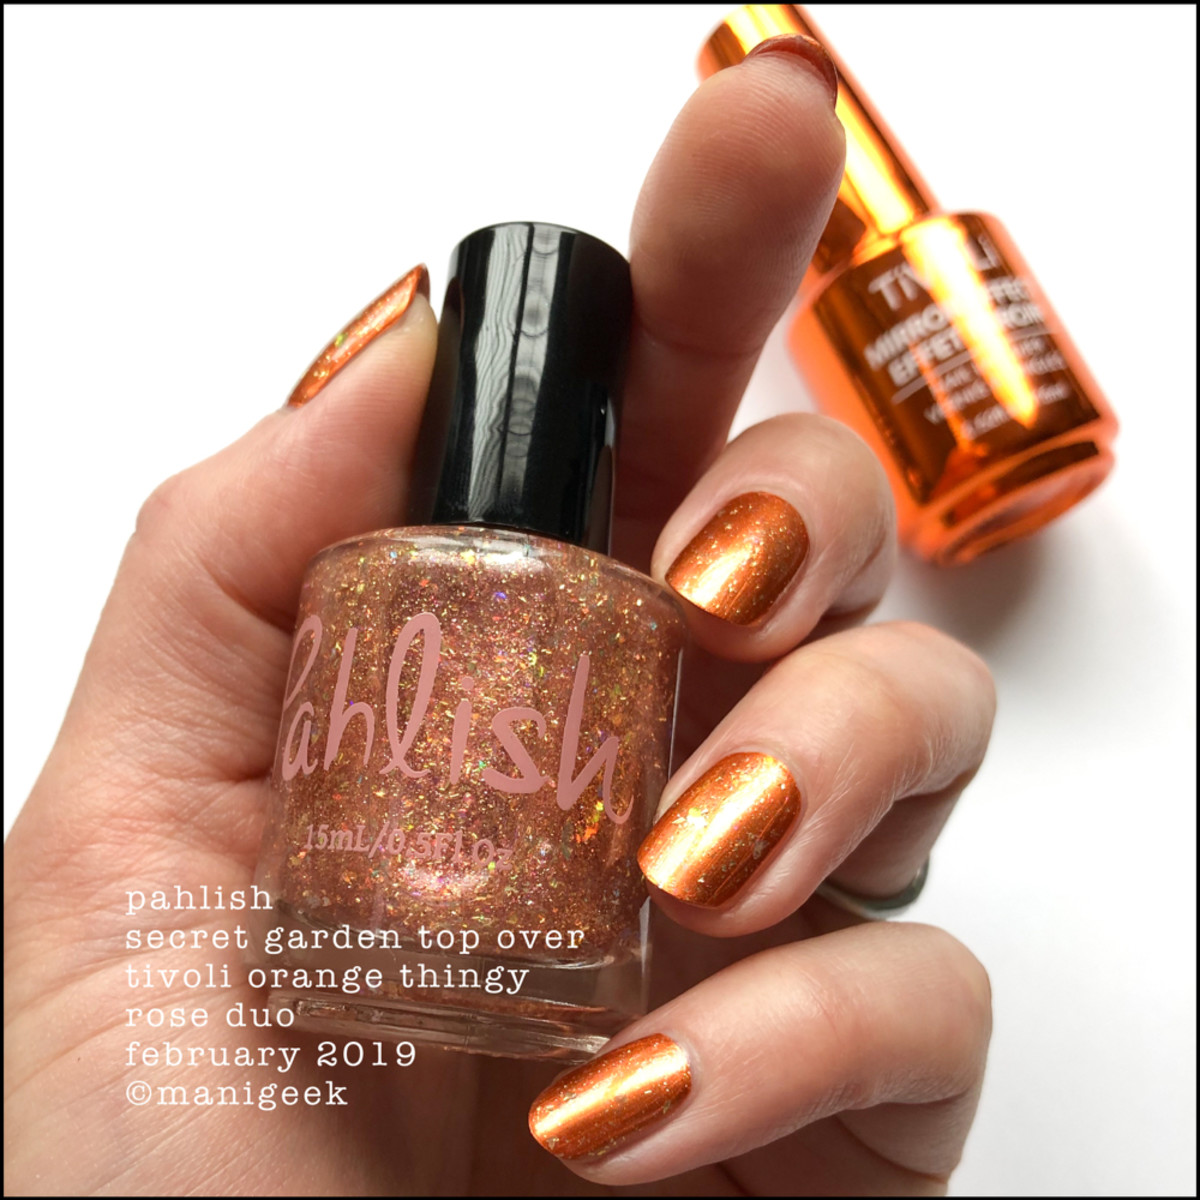 Pahlish Secret Garden over Tivoli Orange - Pahlish Rose Duo Feb 2019